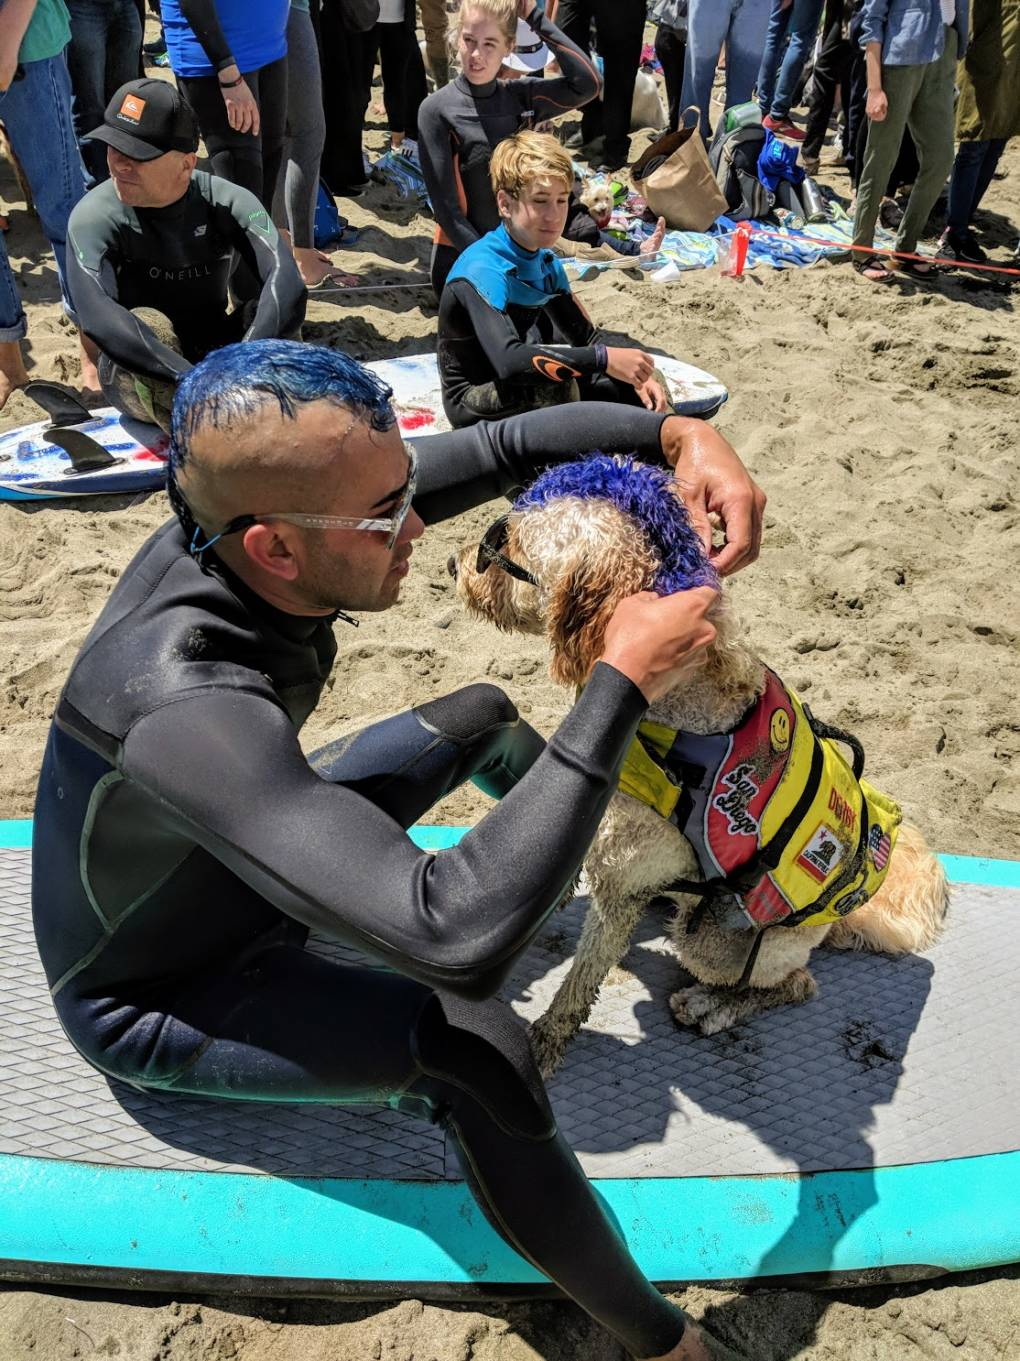 Kentucky Gallahue and his surf dog Derby from San Diego were a crowd favorite with their matching blue mohawks.